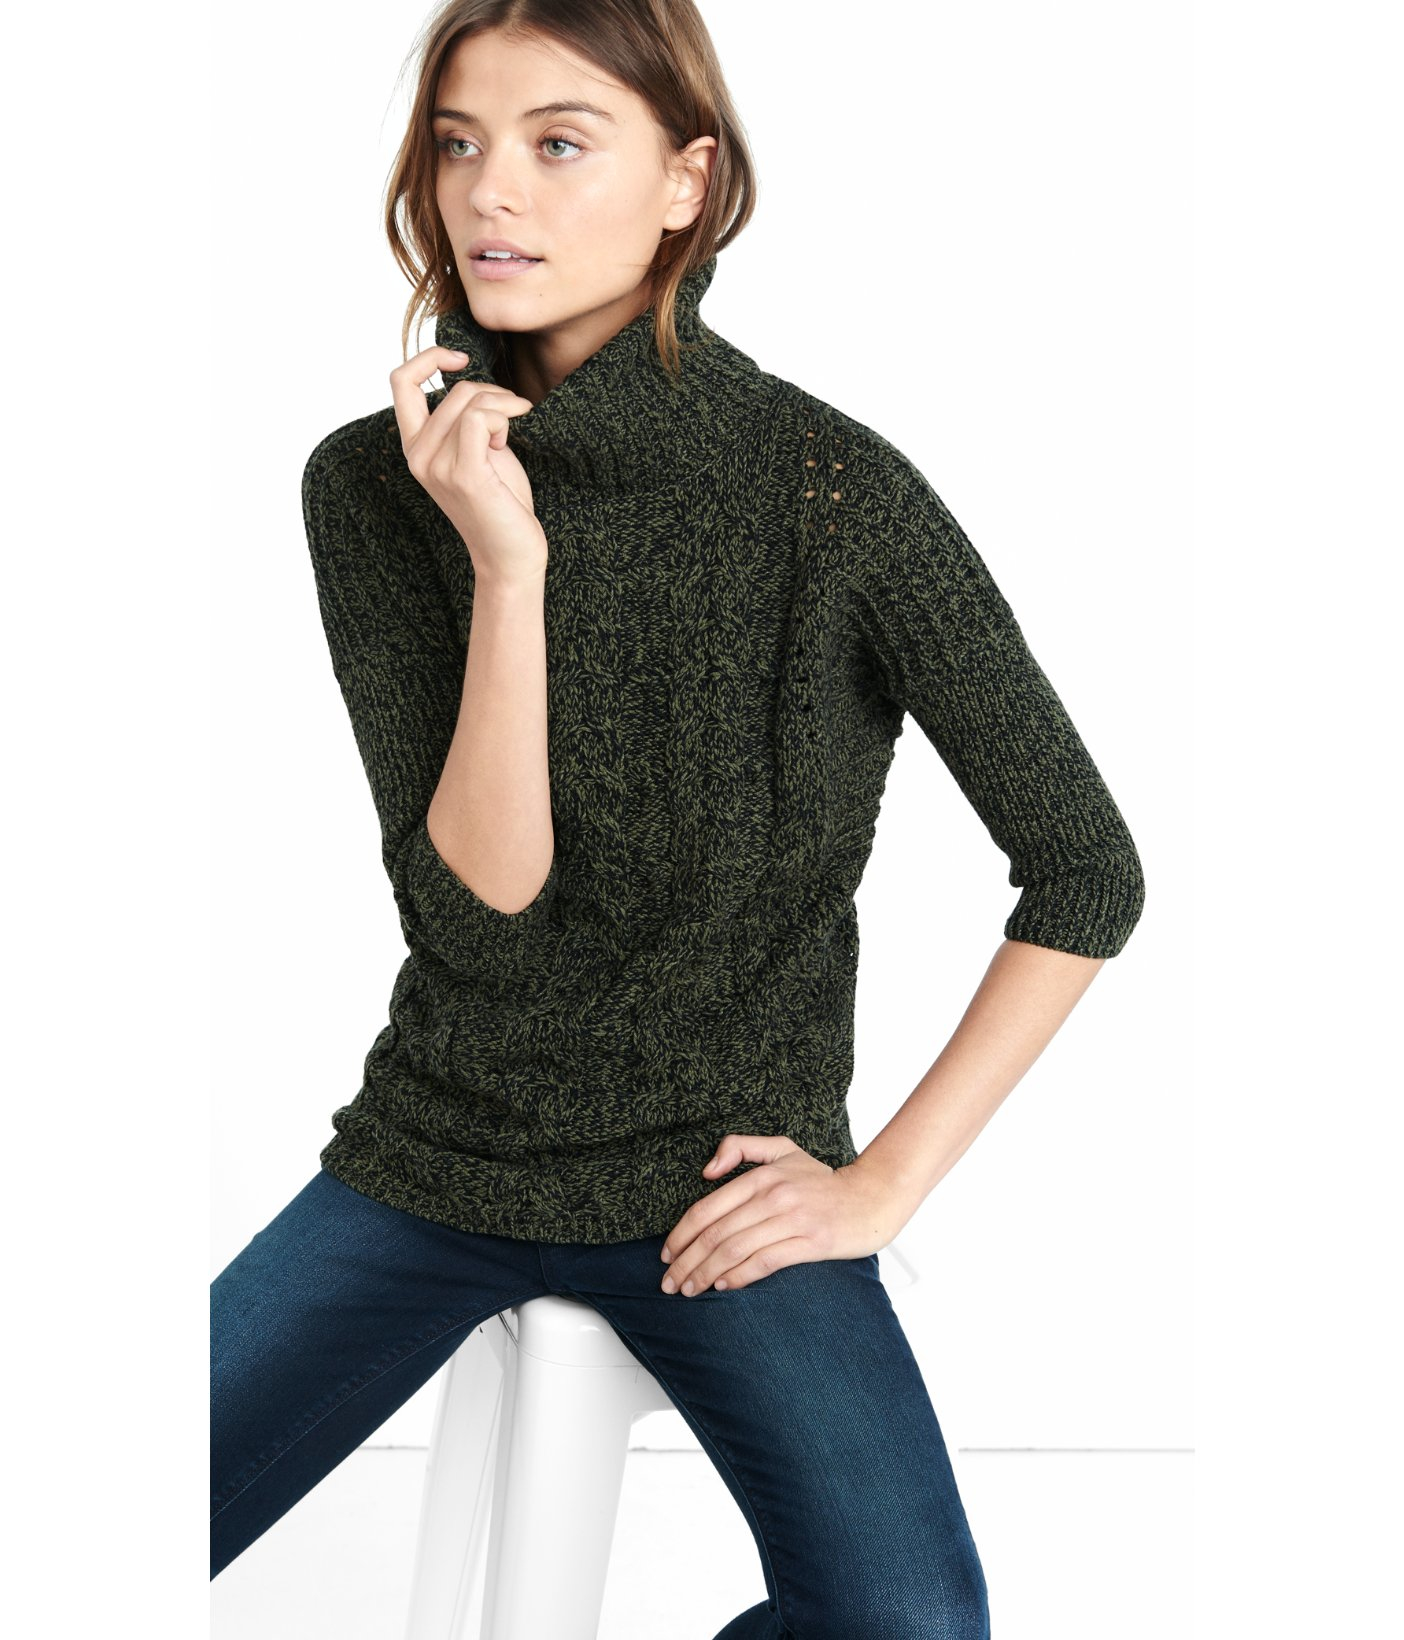 Express Marled Cable Turtleneck Tunic Sweater in Green | Lyst